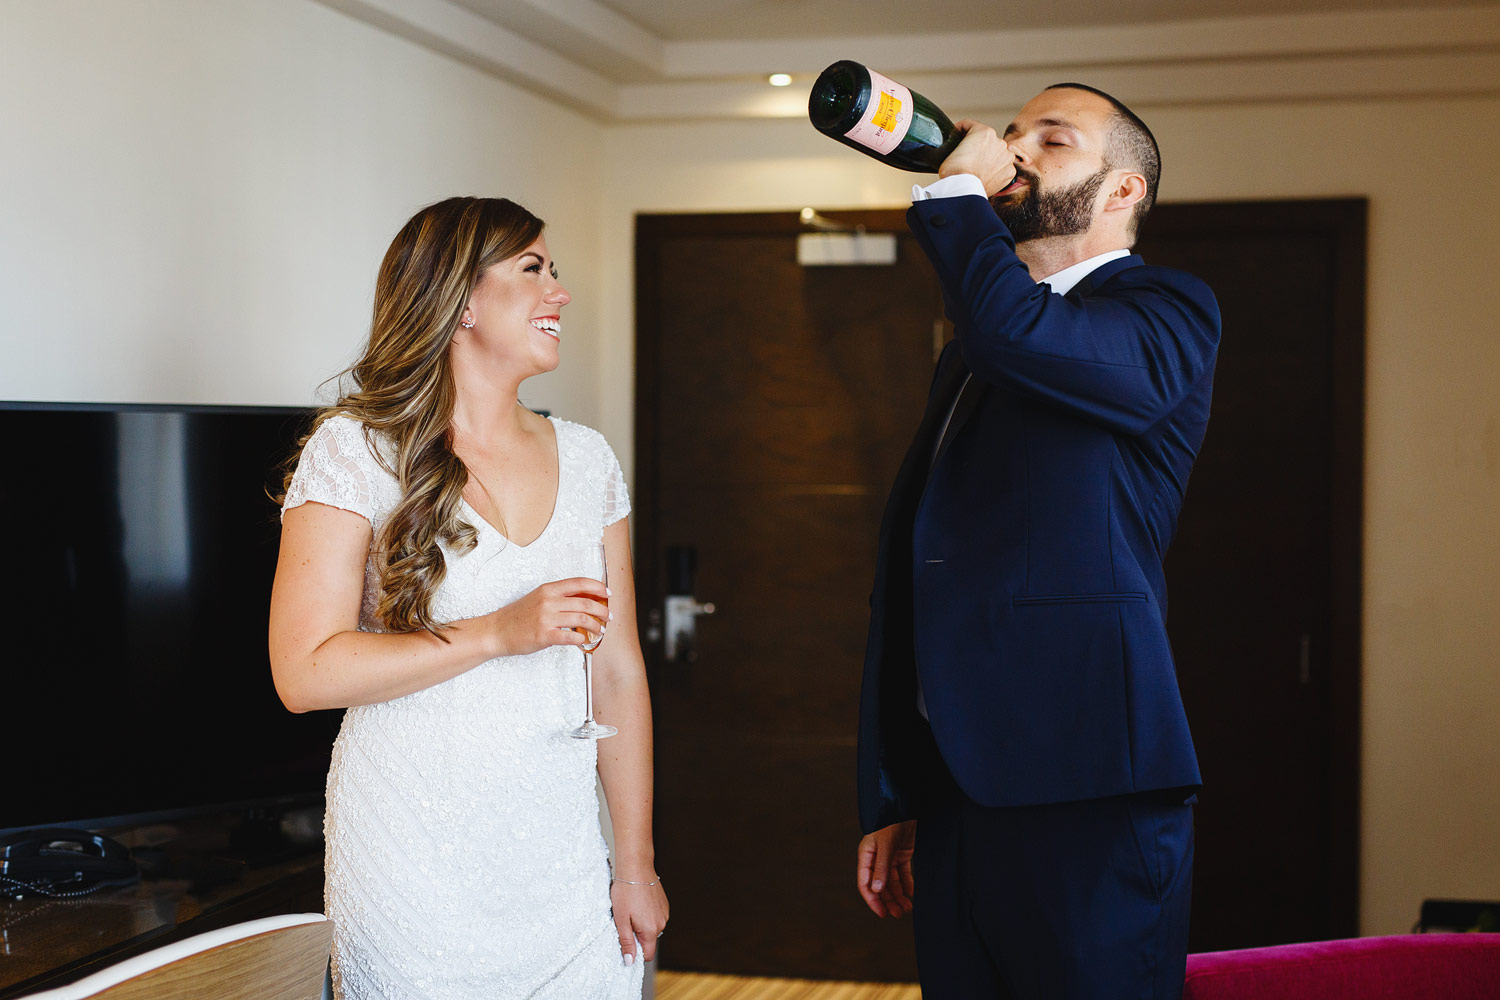 A couple drink Verve Cliquot champagne at The Marylebone Hotel - London wedding photographer